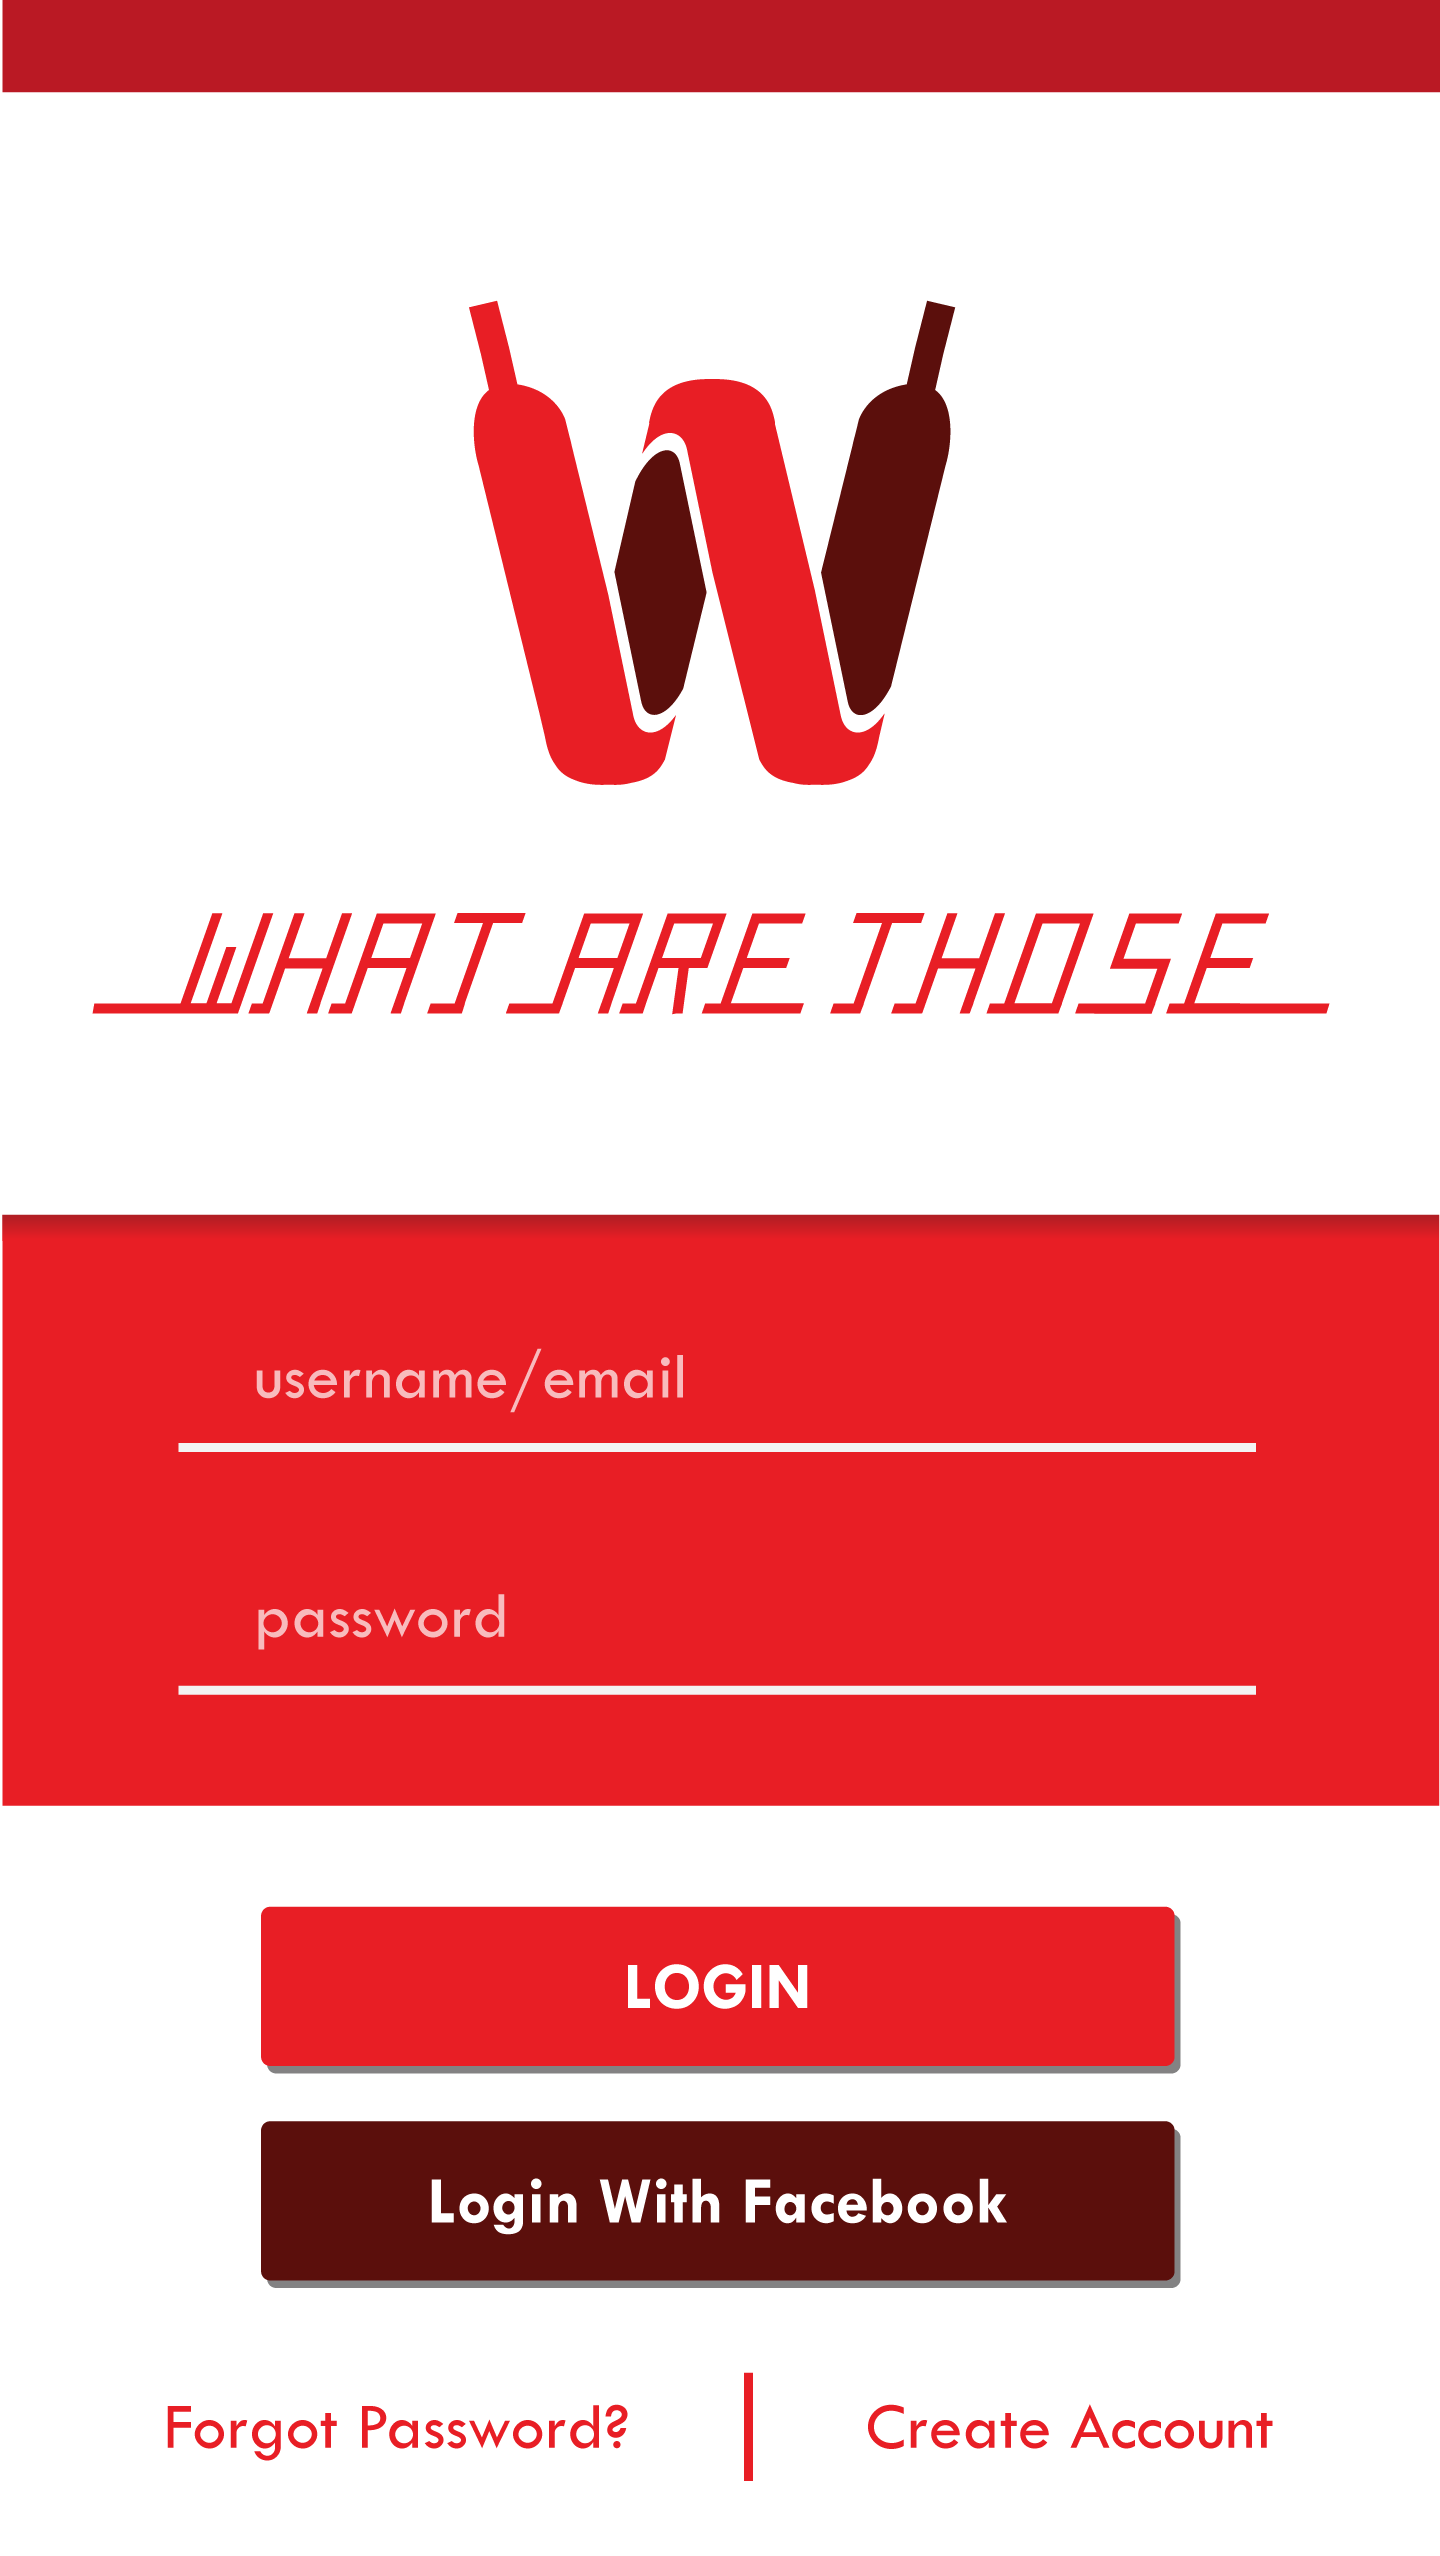 What-Are-Those-Login-1.png